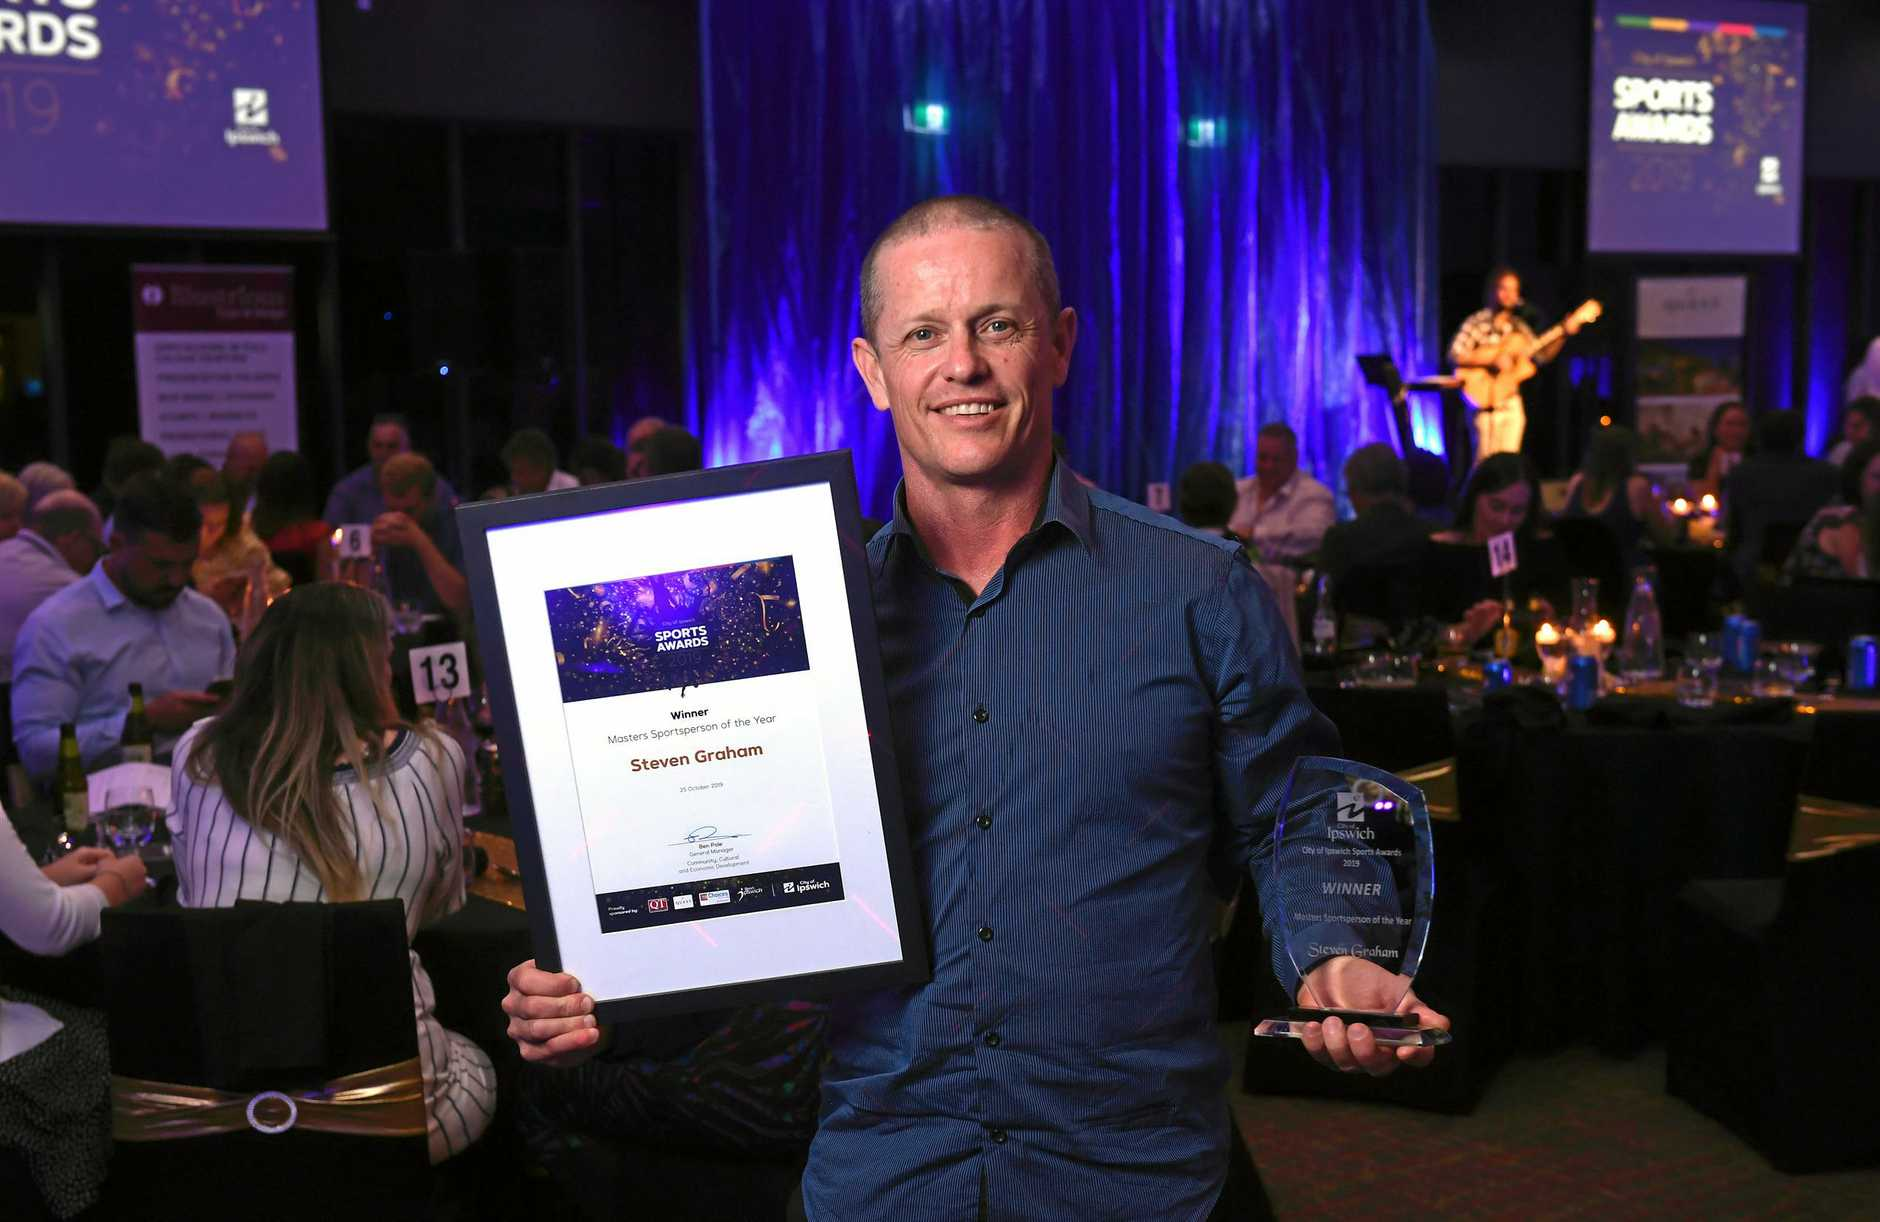 Masters Sportsperson of the Year Steven Graham at the City of Ipswich Sports Awards held at the North Ipswich Reserve on Friday night.